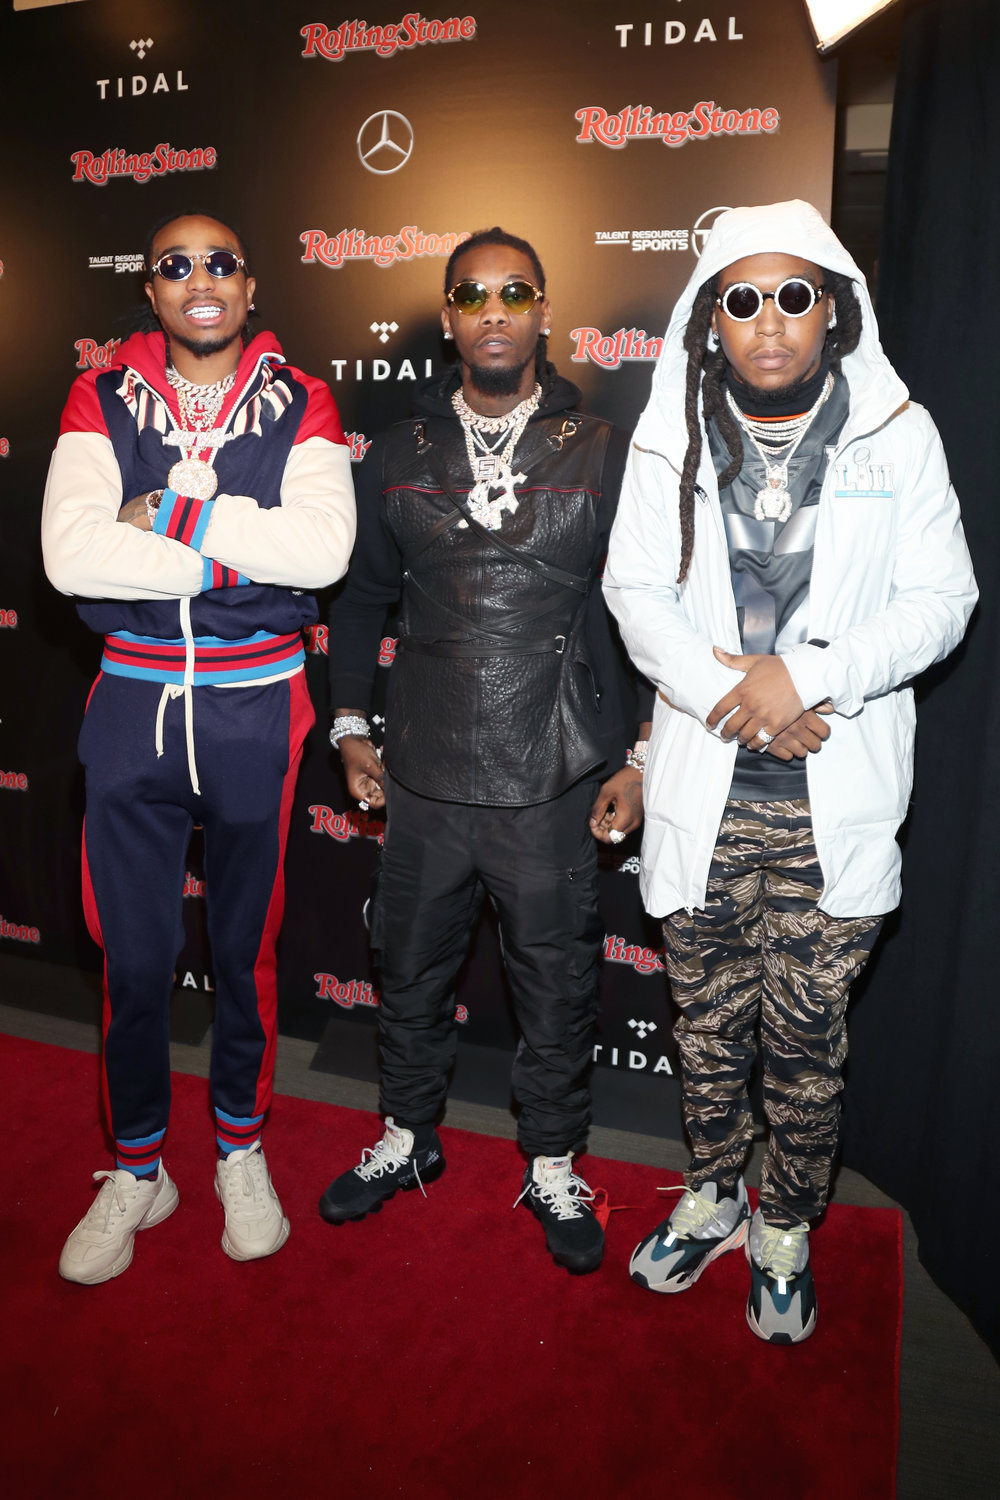 Quavo, Offset & Takeoff from MIGOS